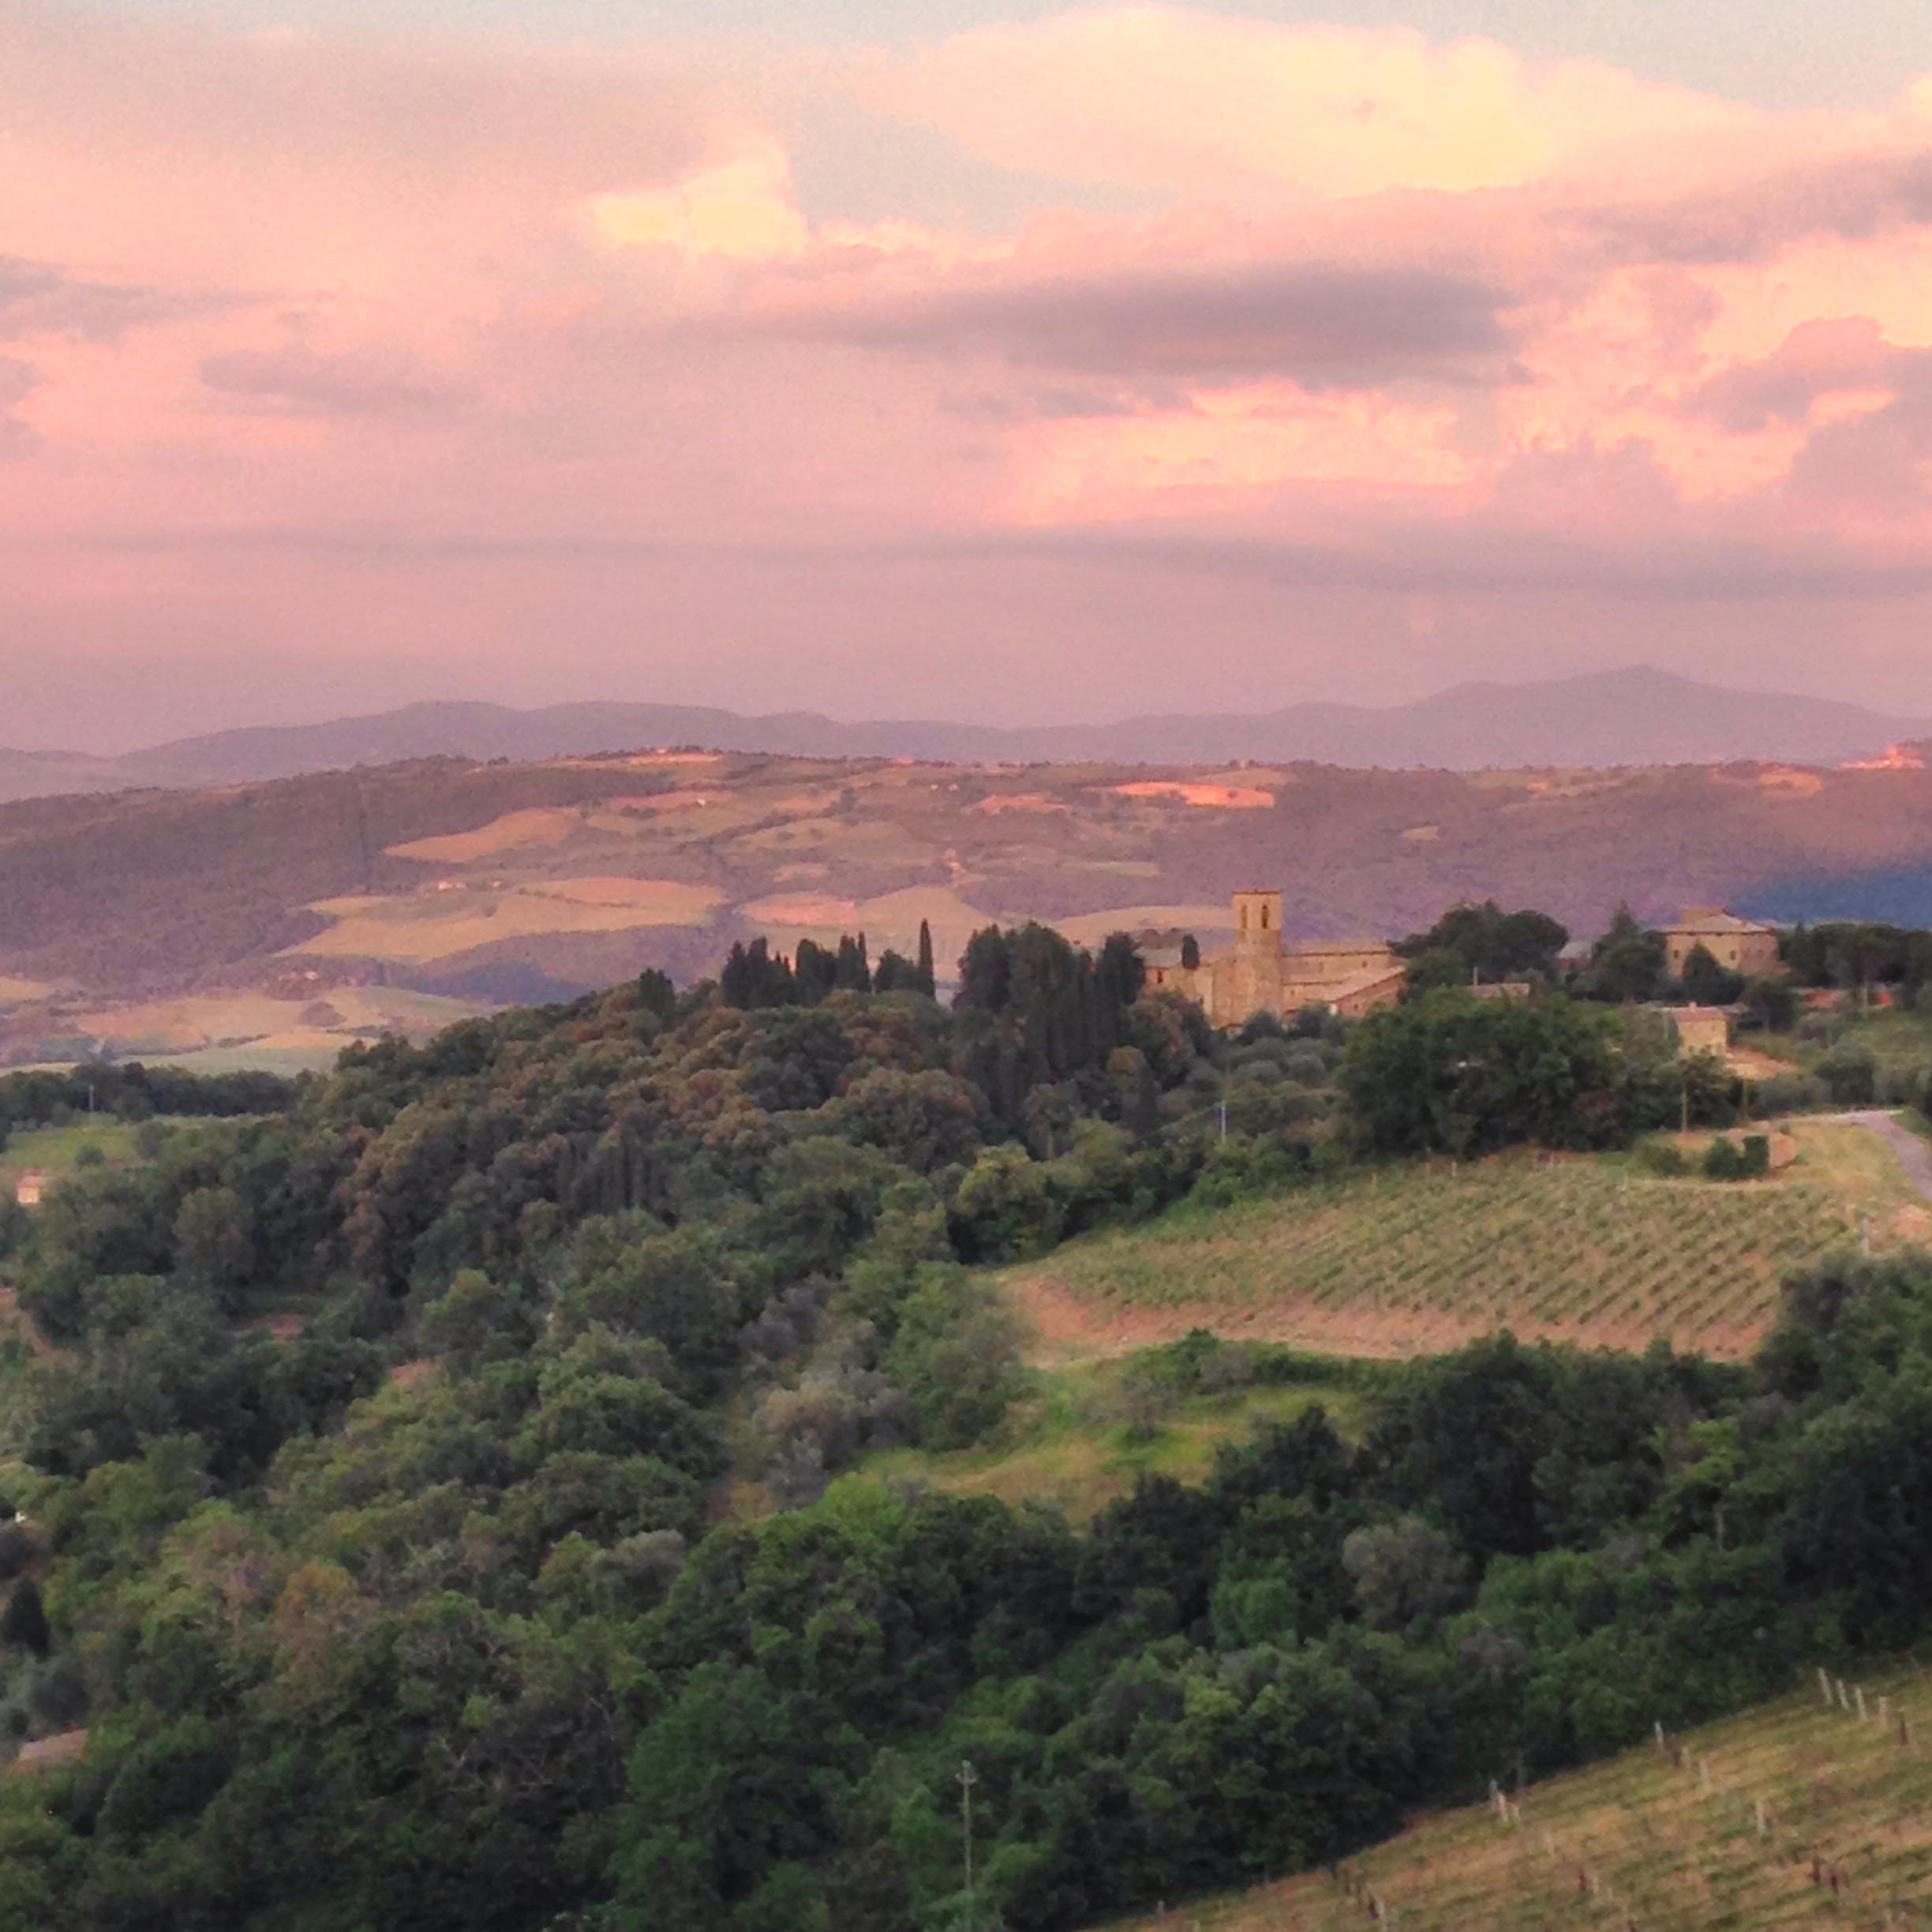 Pink sunset in Tuscany on a transformational travel experience